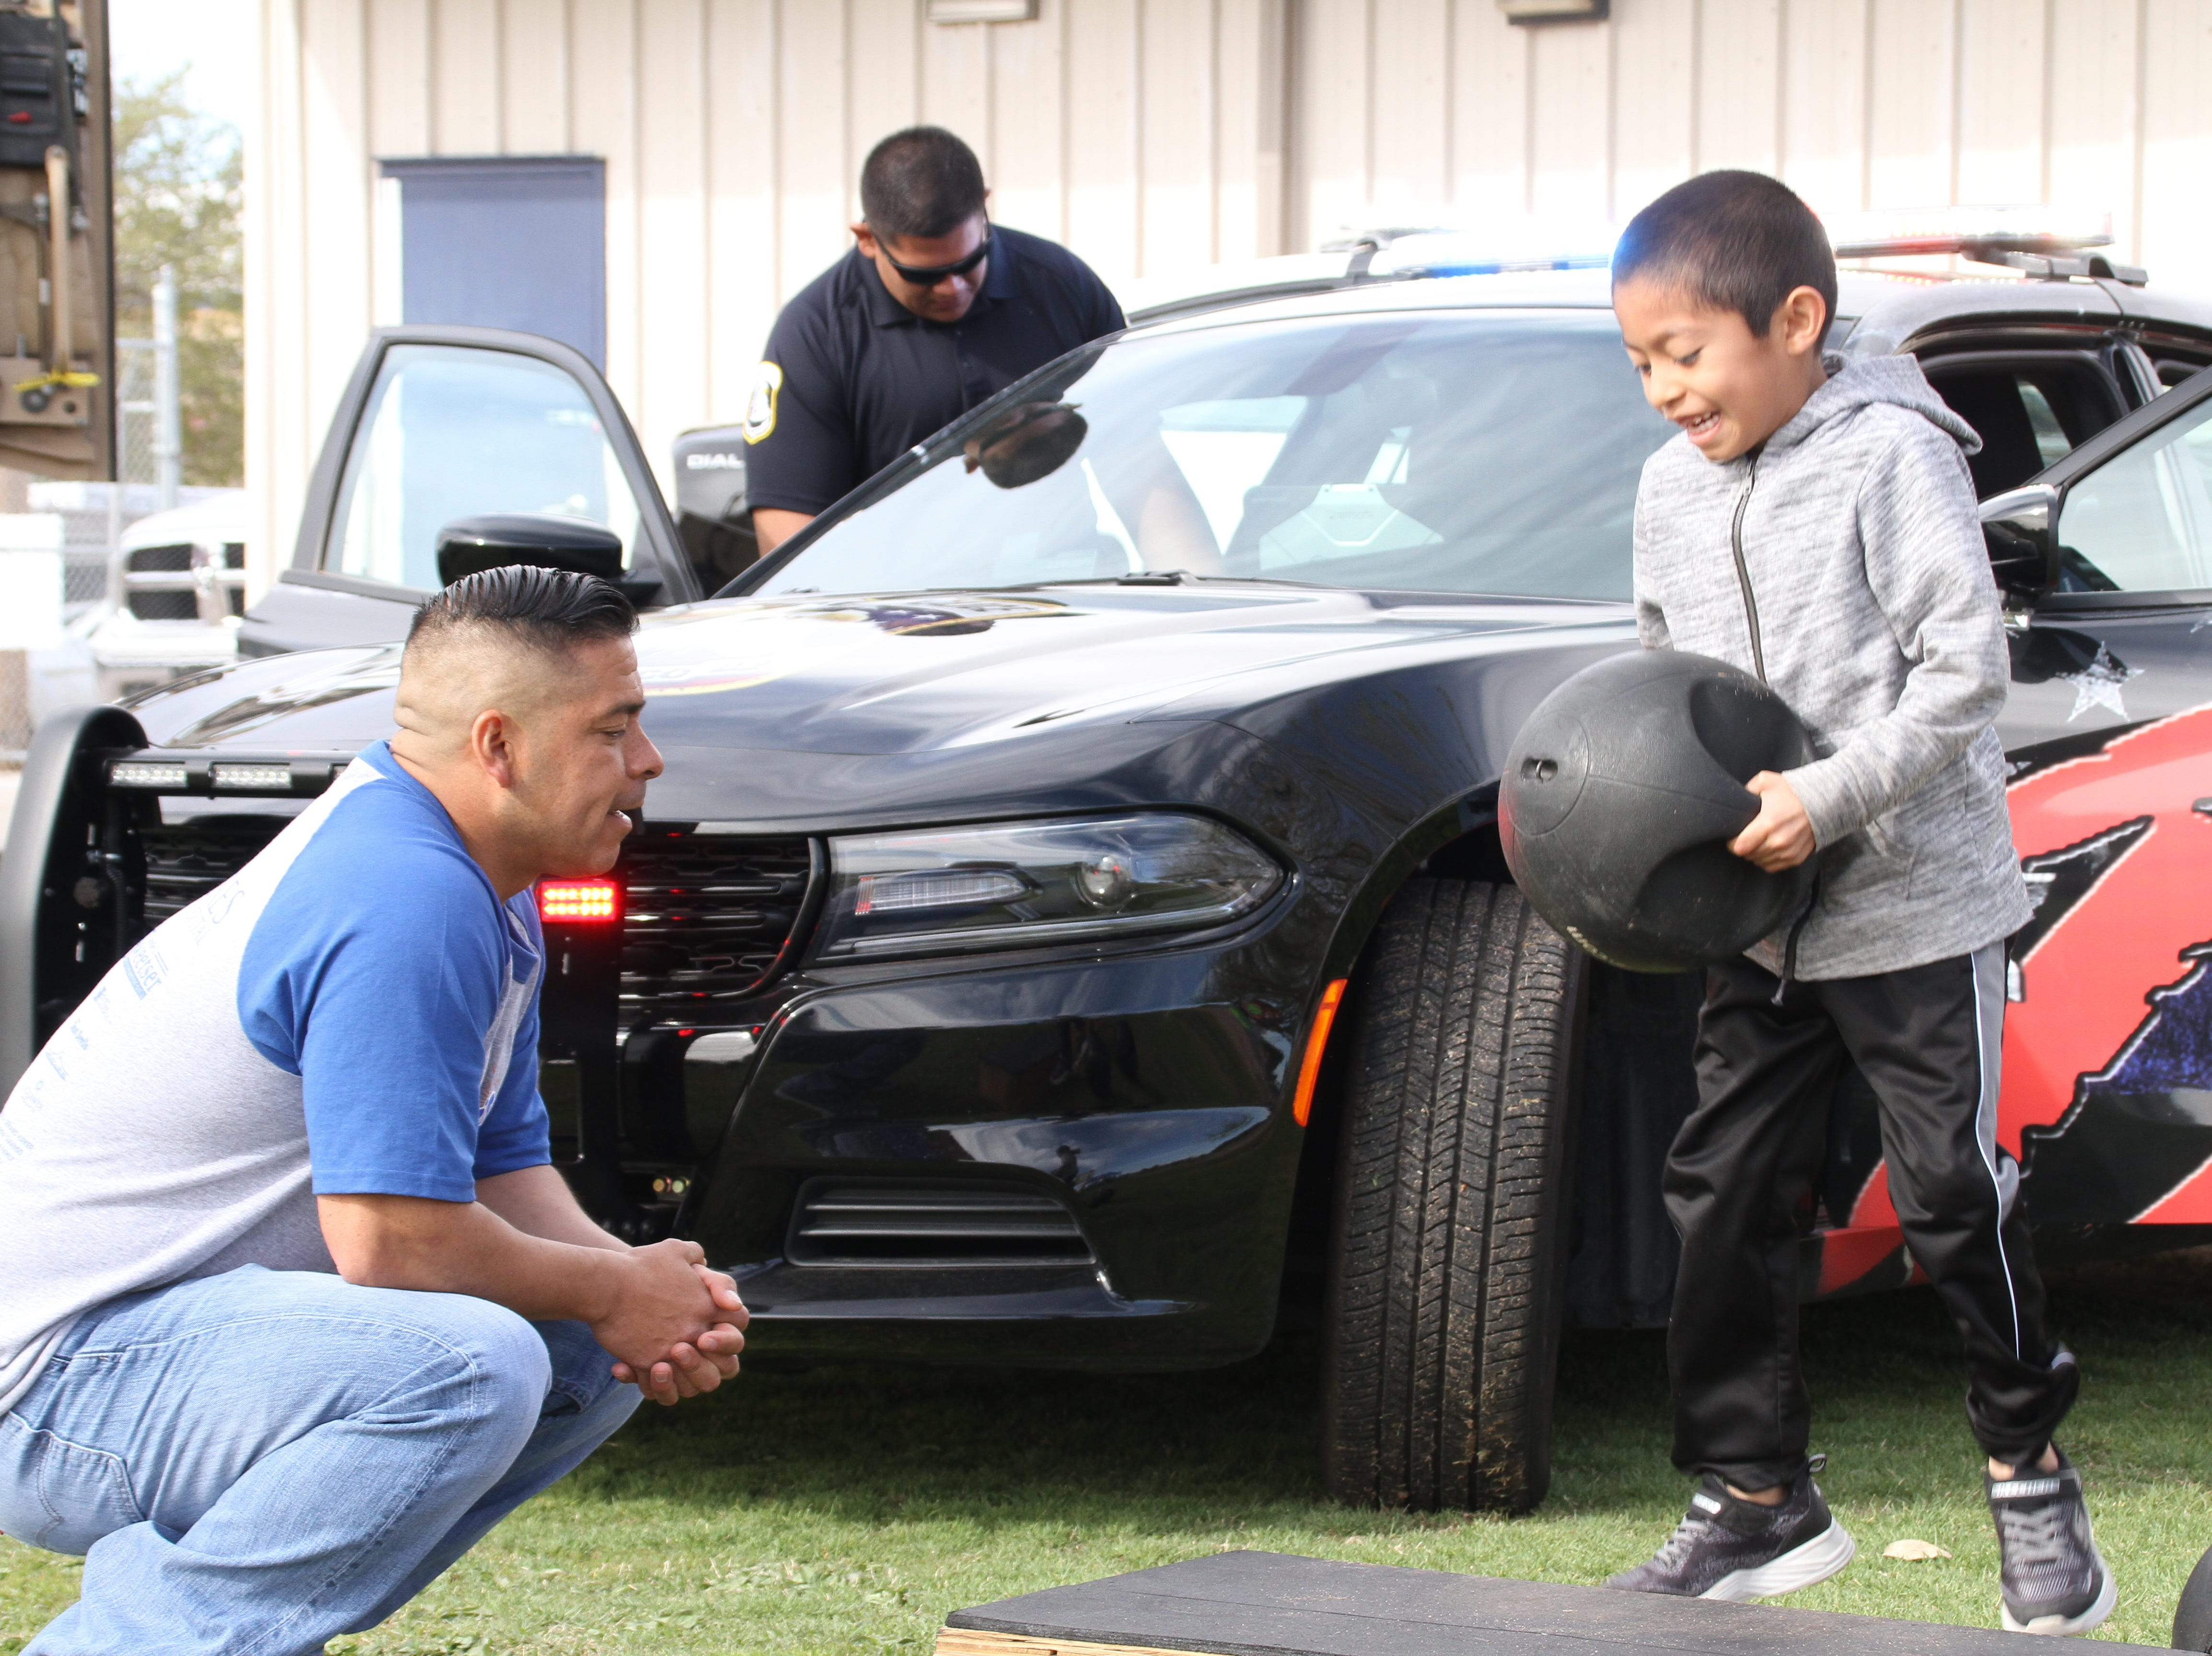 Deming Police hosts an obstacle training course for the kids during the second annual Deming Autism Walk. From left, police officer Nick Perez watches over 6-year-old Aleks Rodriguez complete the course.